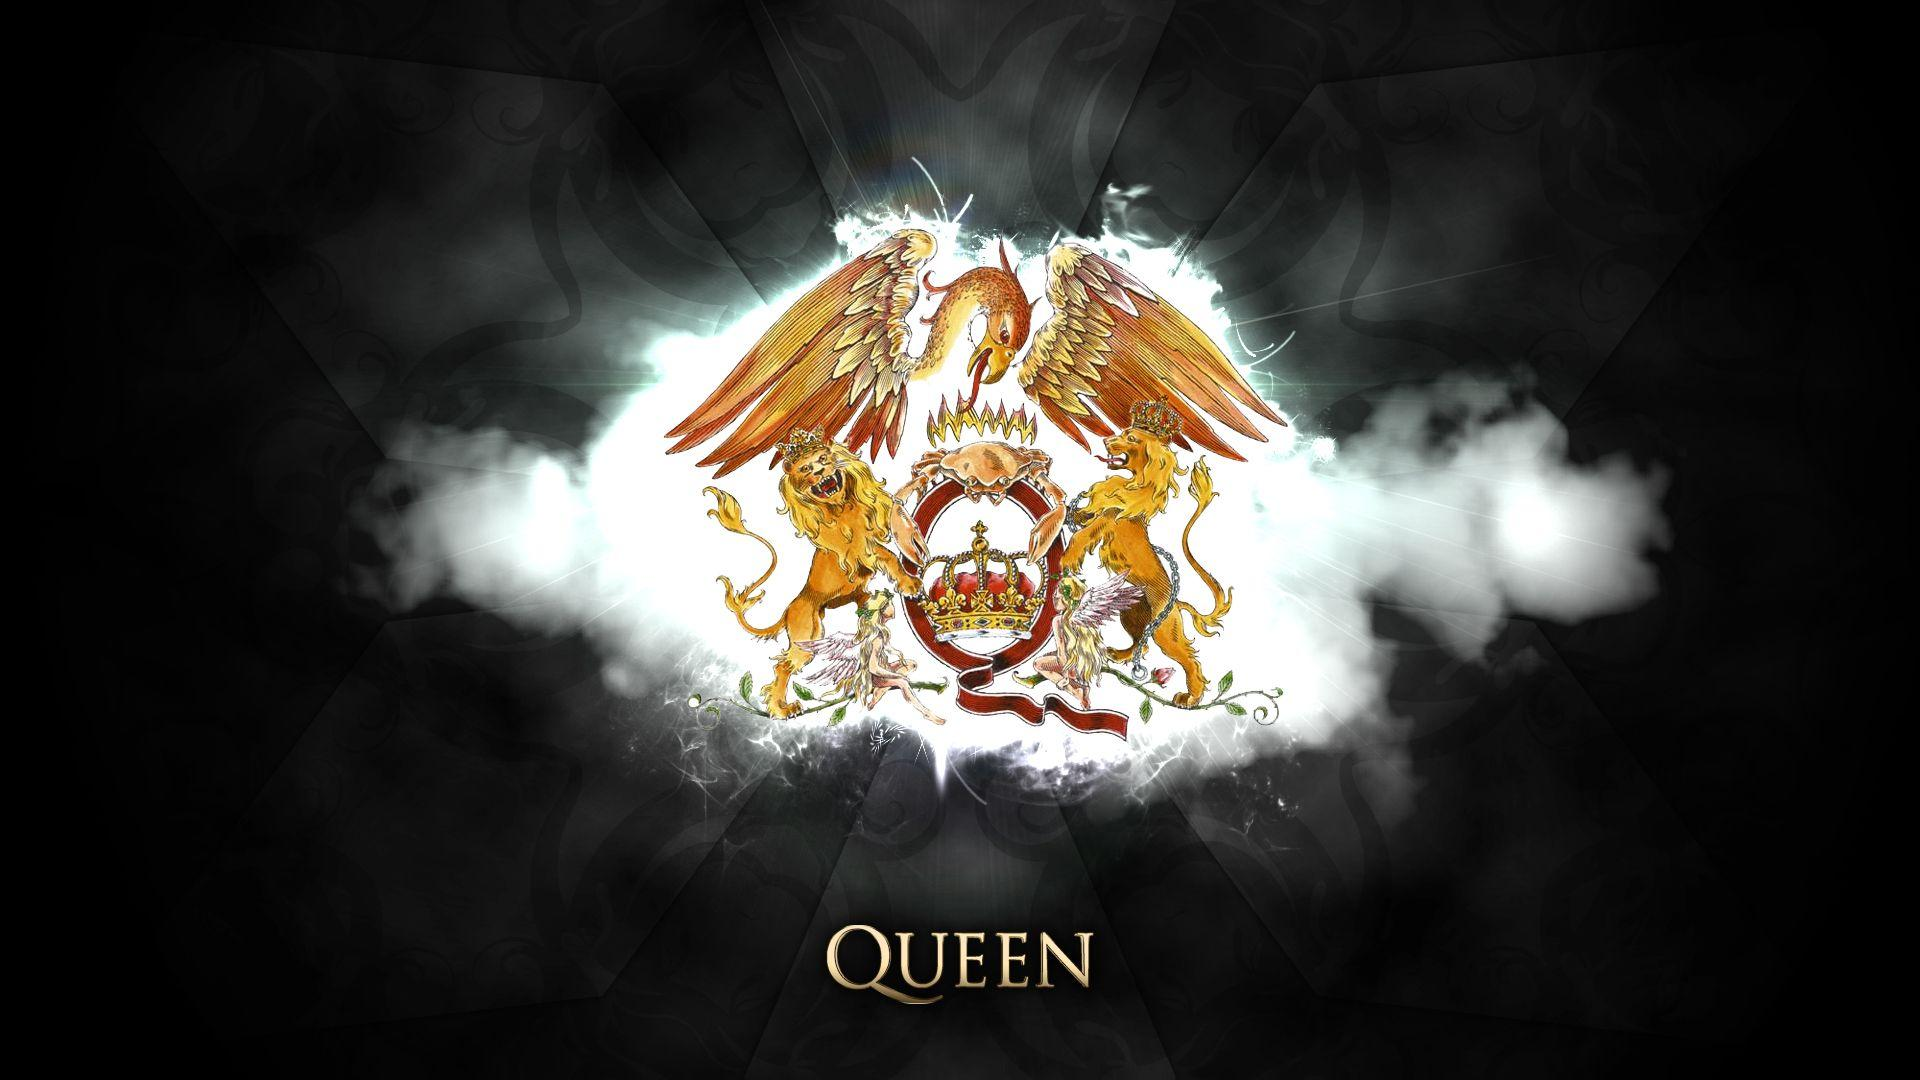 Queen Logo Wallpapers Wallpaper Cave